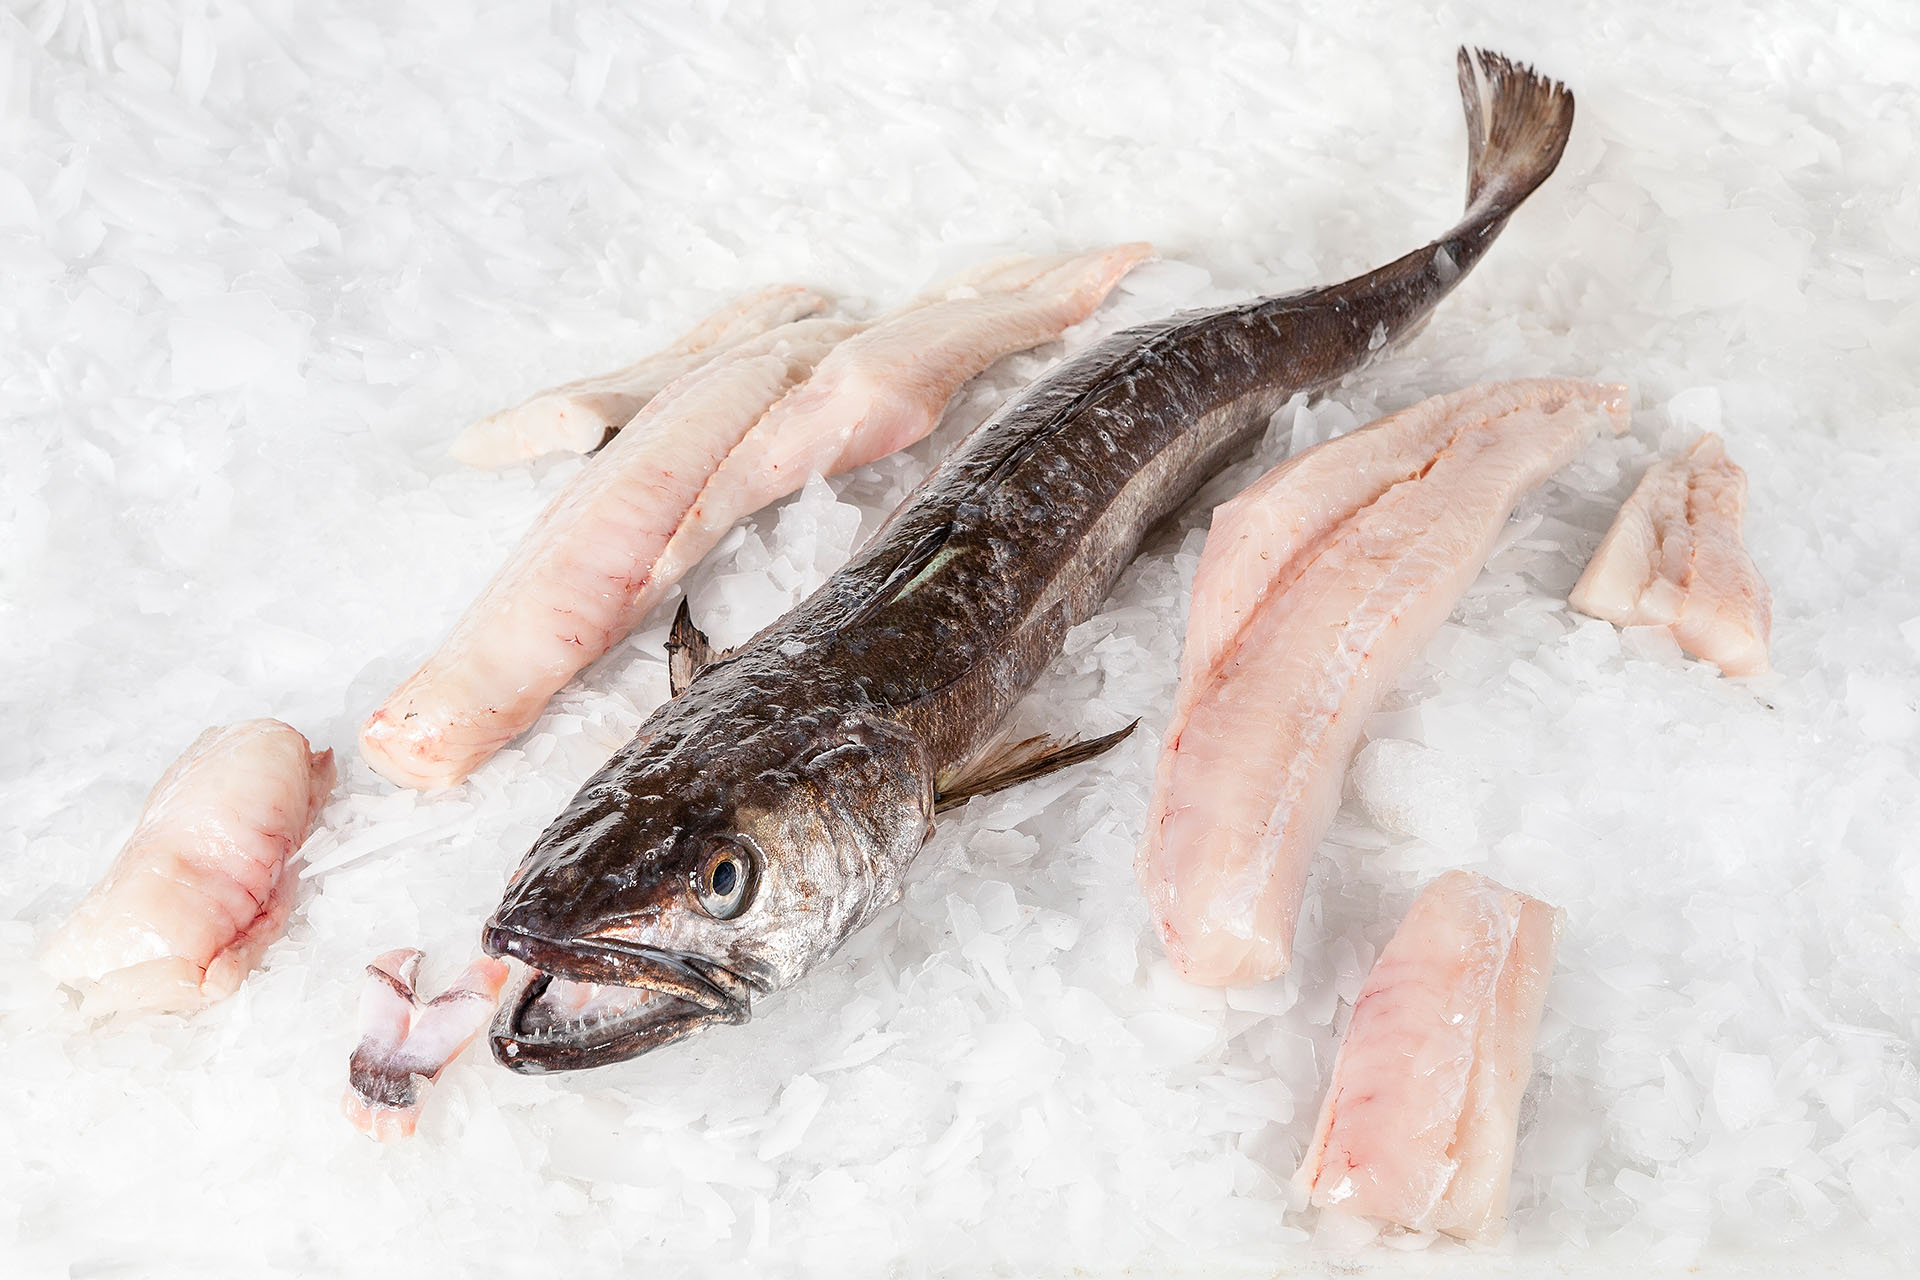 filleted fish distributor